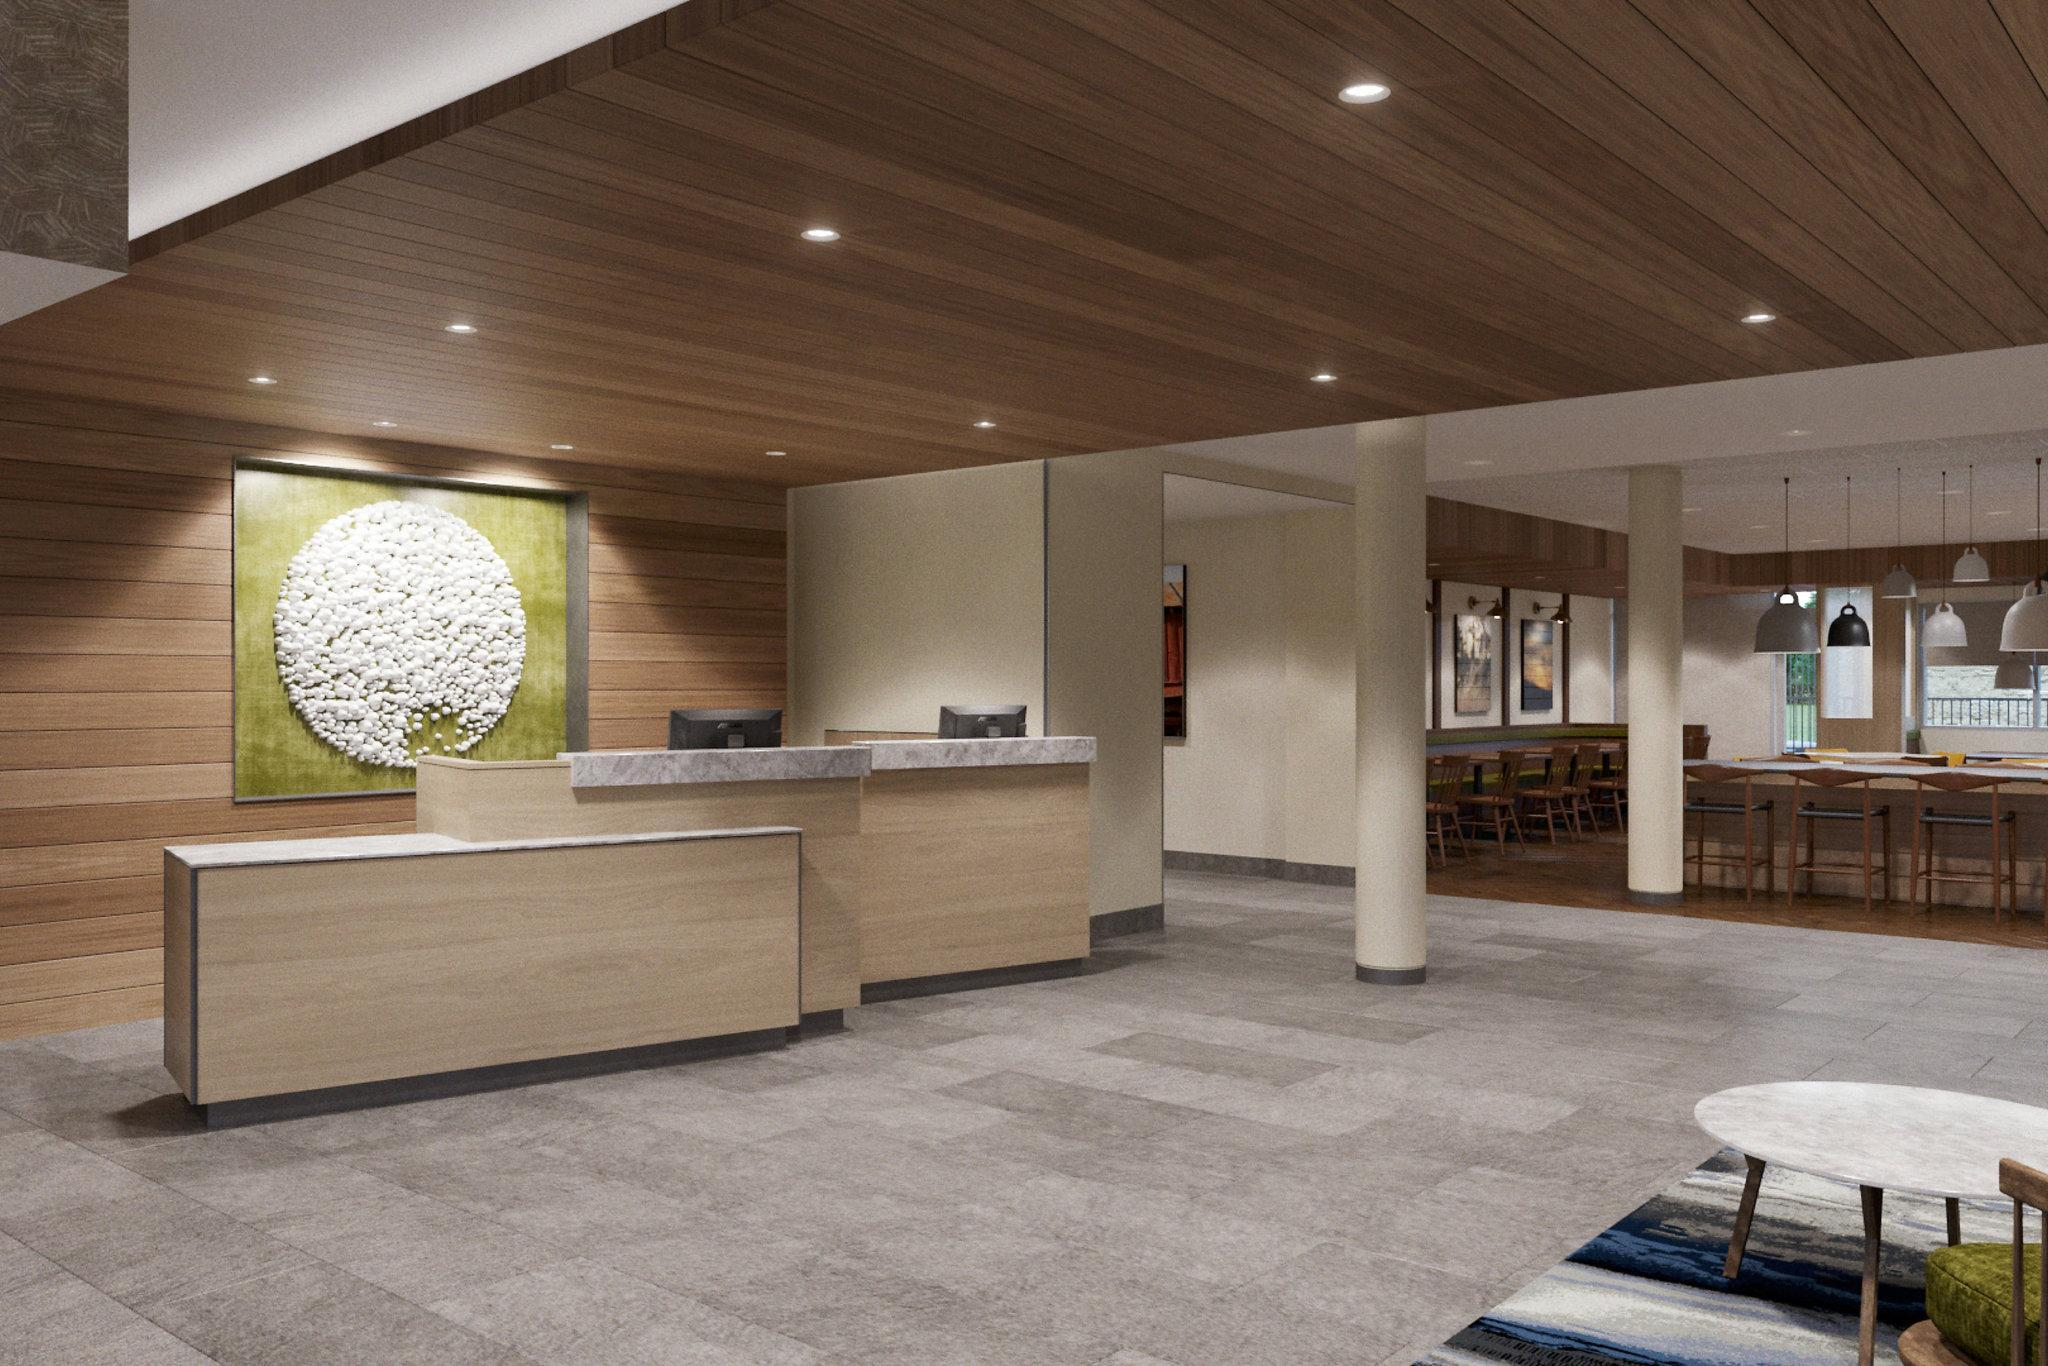 Fairfield Inn And Suites By Marriott Fort Worth Southwest At Cityview